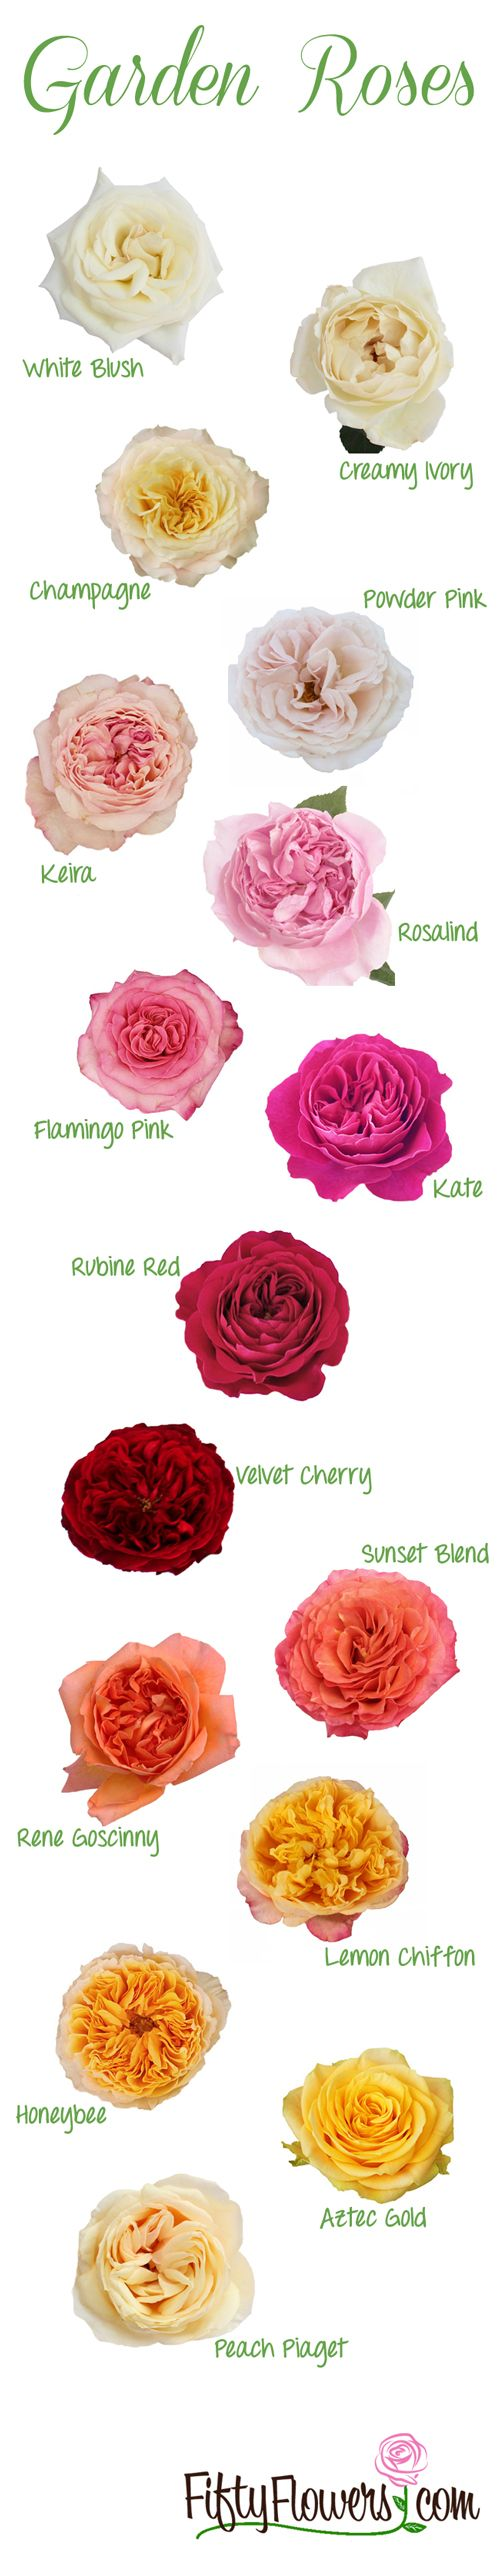 Drawn rose bush beautiful flower FiftyFlowers at are available ideas